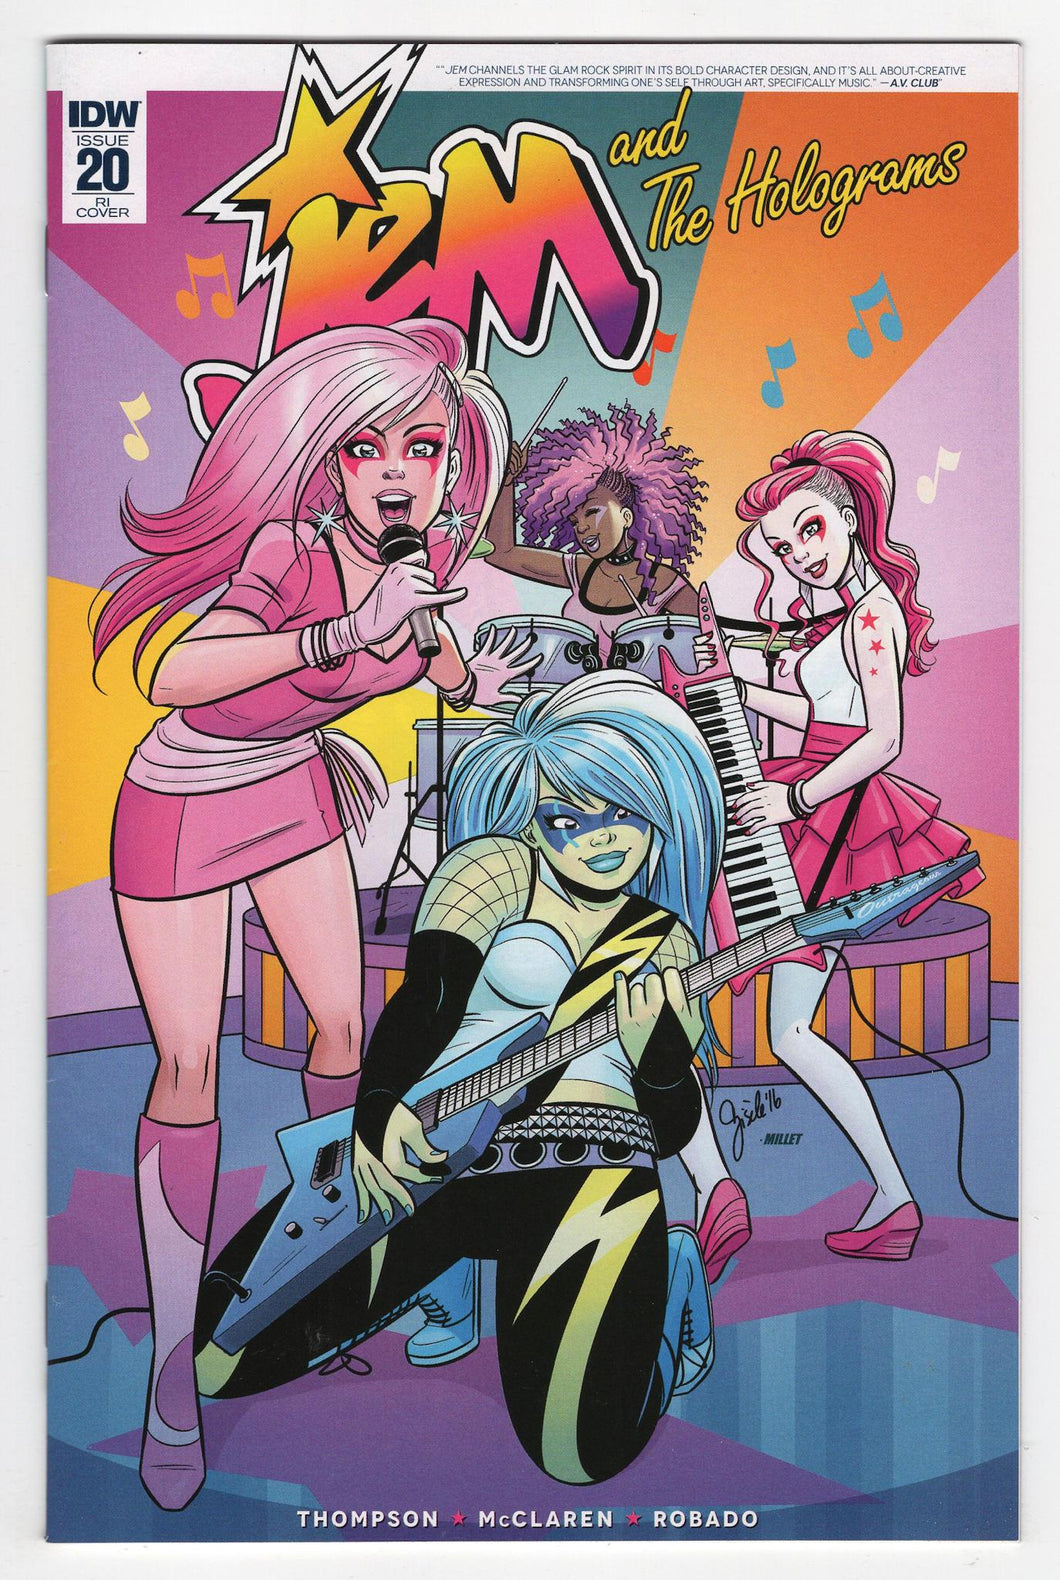 Jem and the Holograms #20 Variant Cover Front